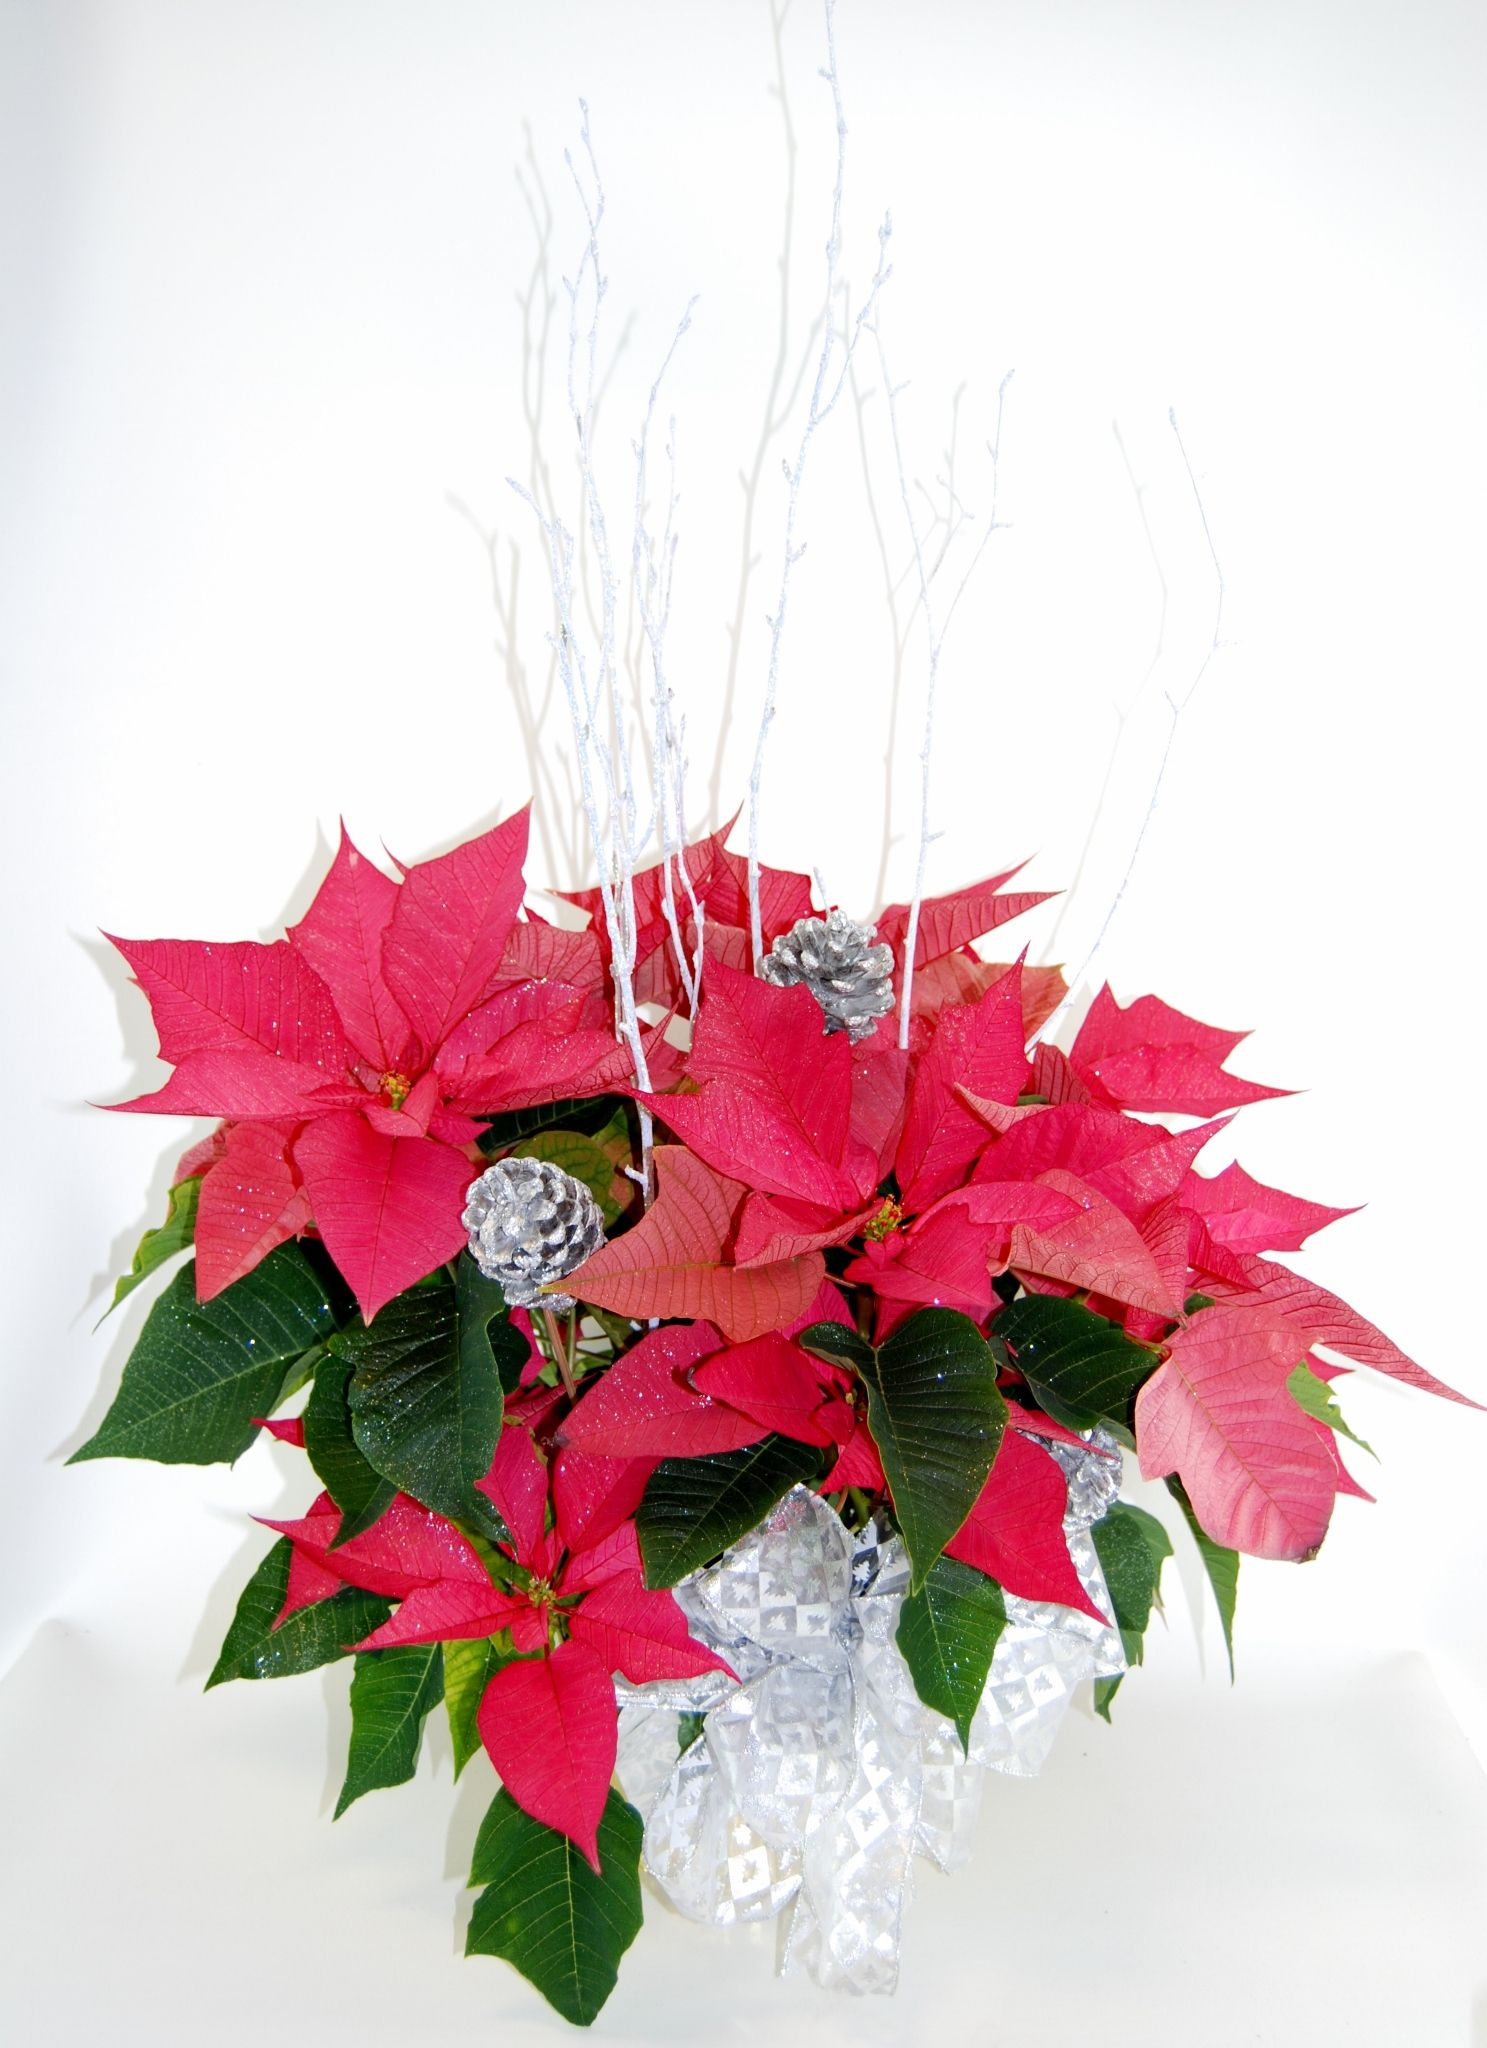 Frosting On The Poinsettia Flowers Online